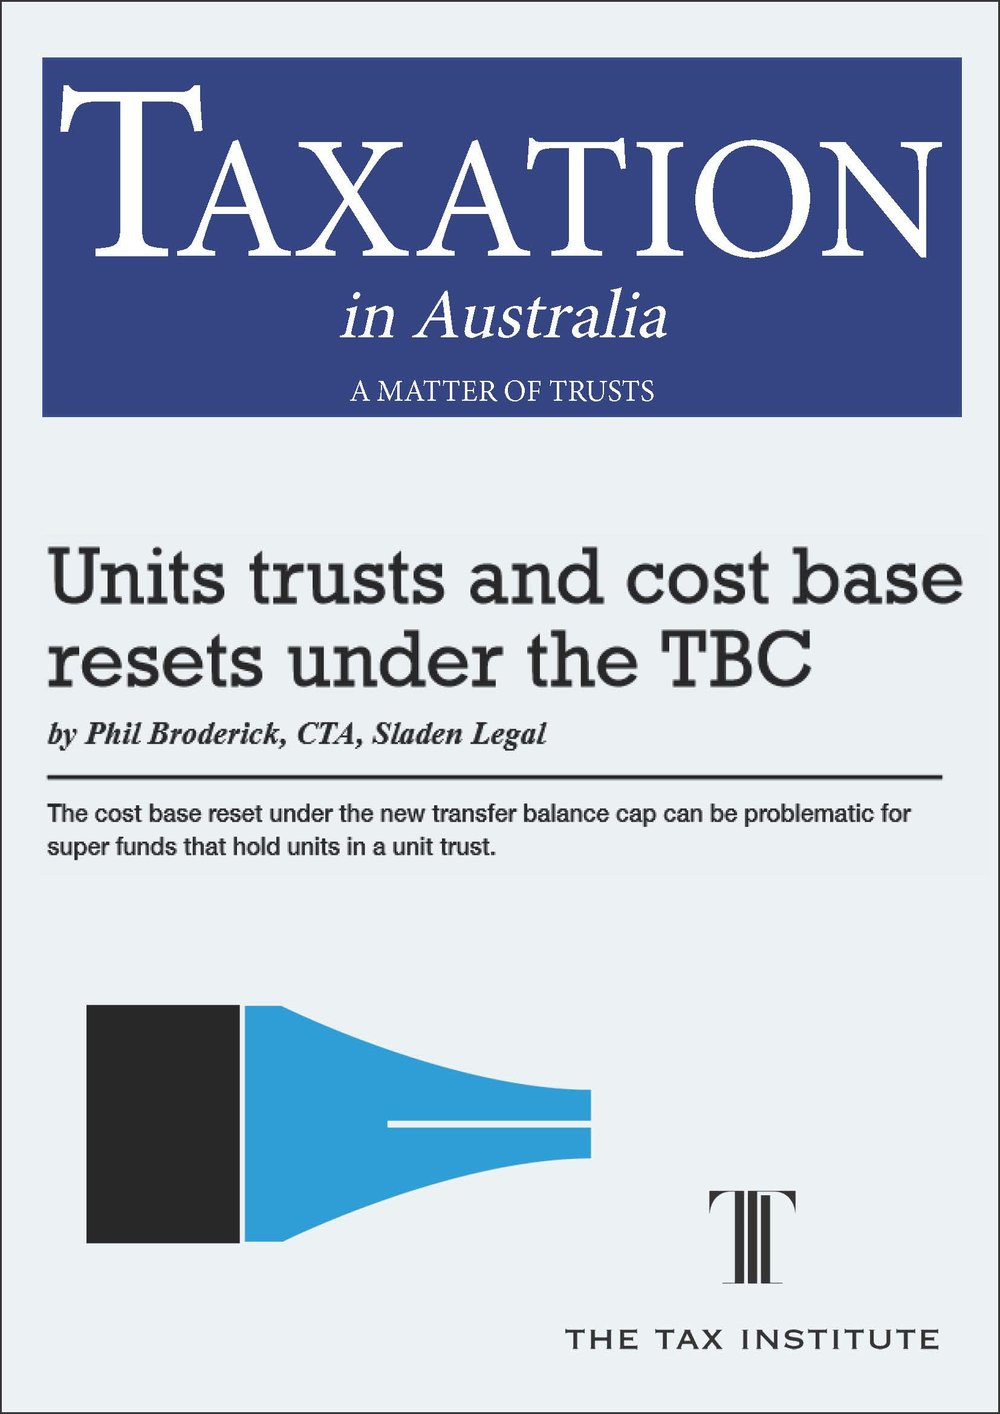 Unit trusts and cost base resets under the TBC 20 April 2017